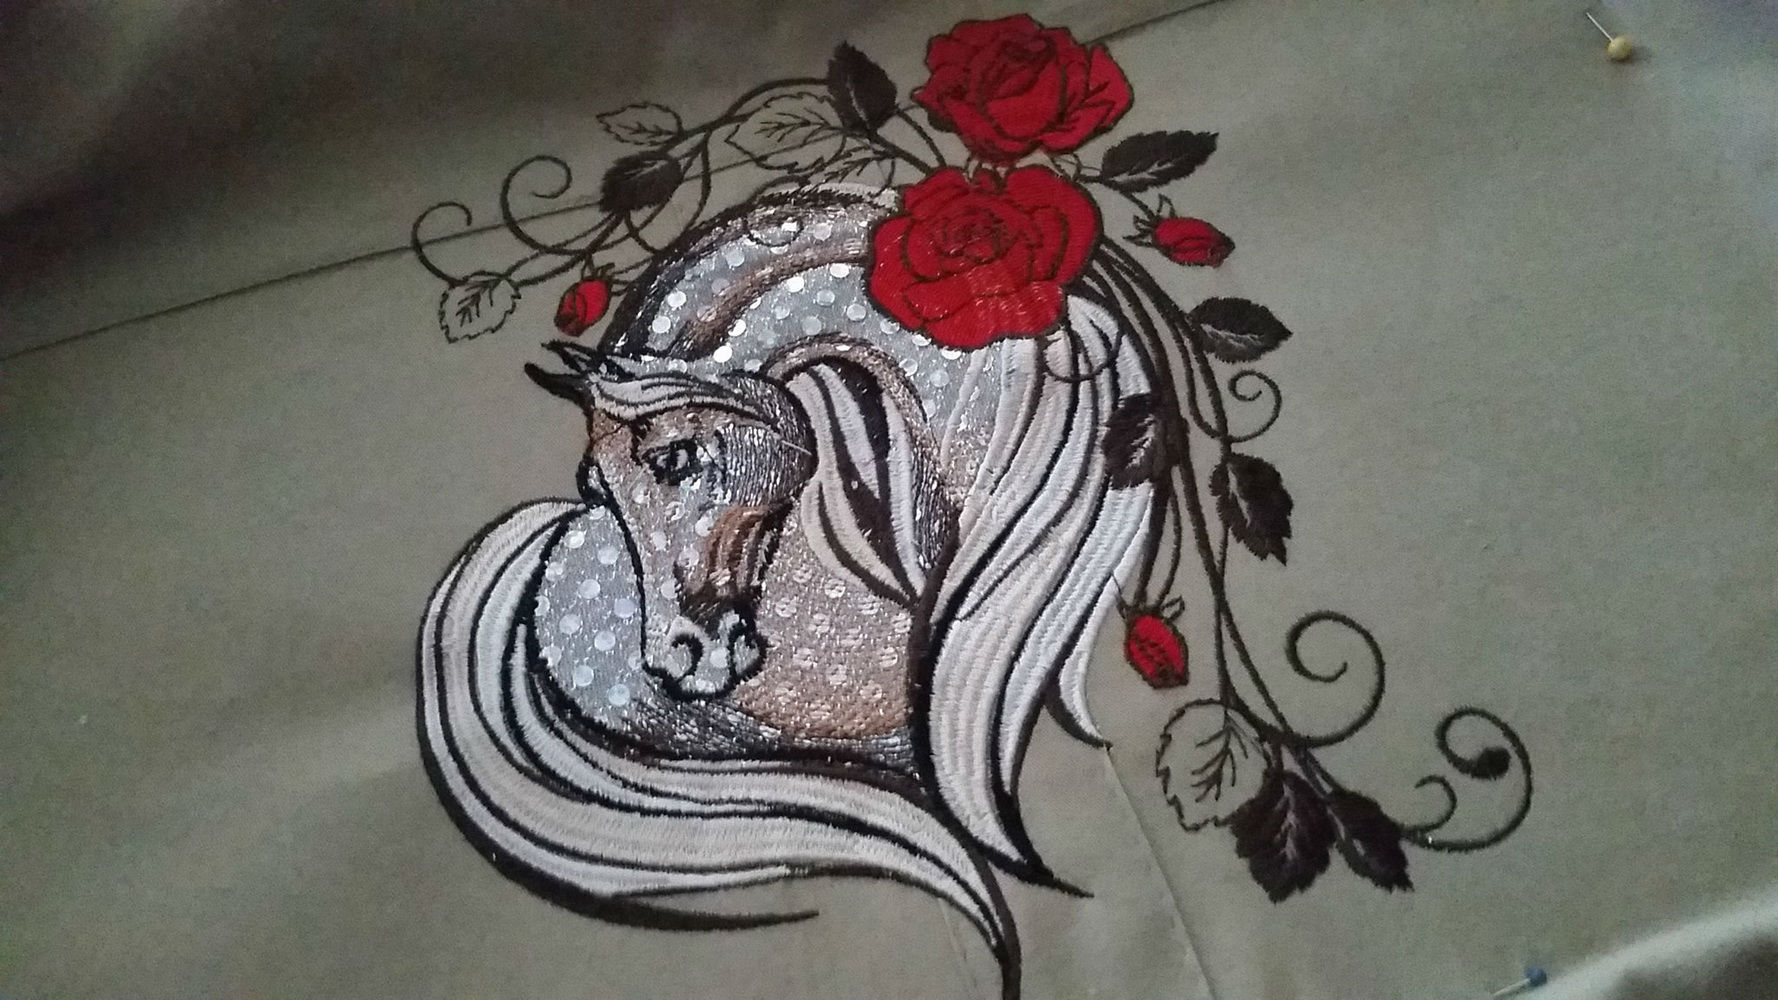 Horse with rose embroidered